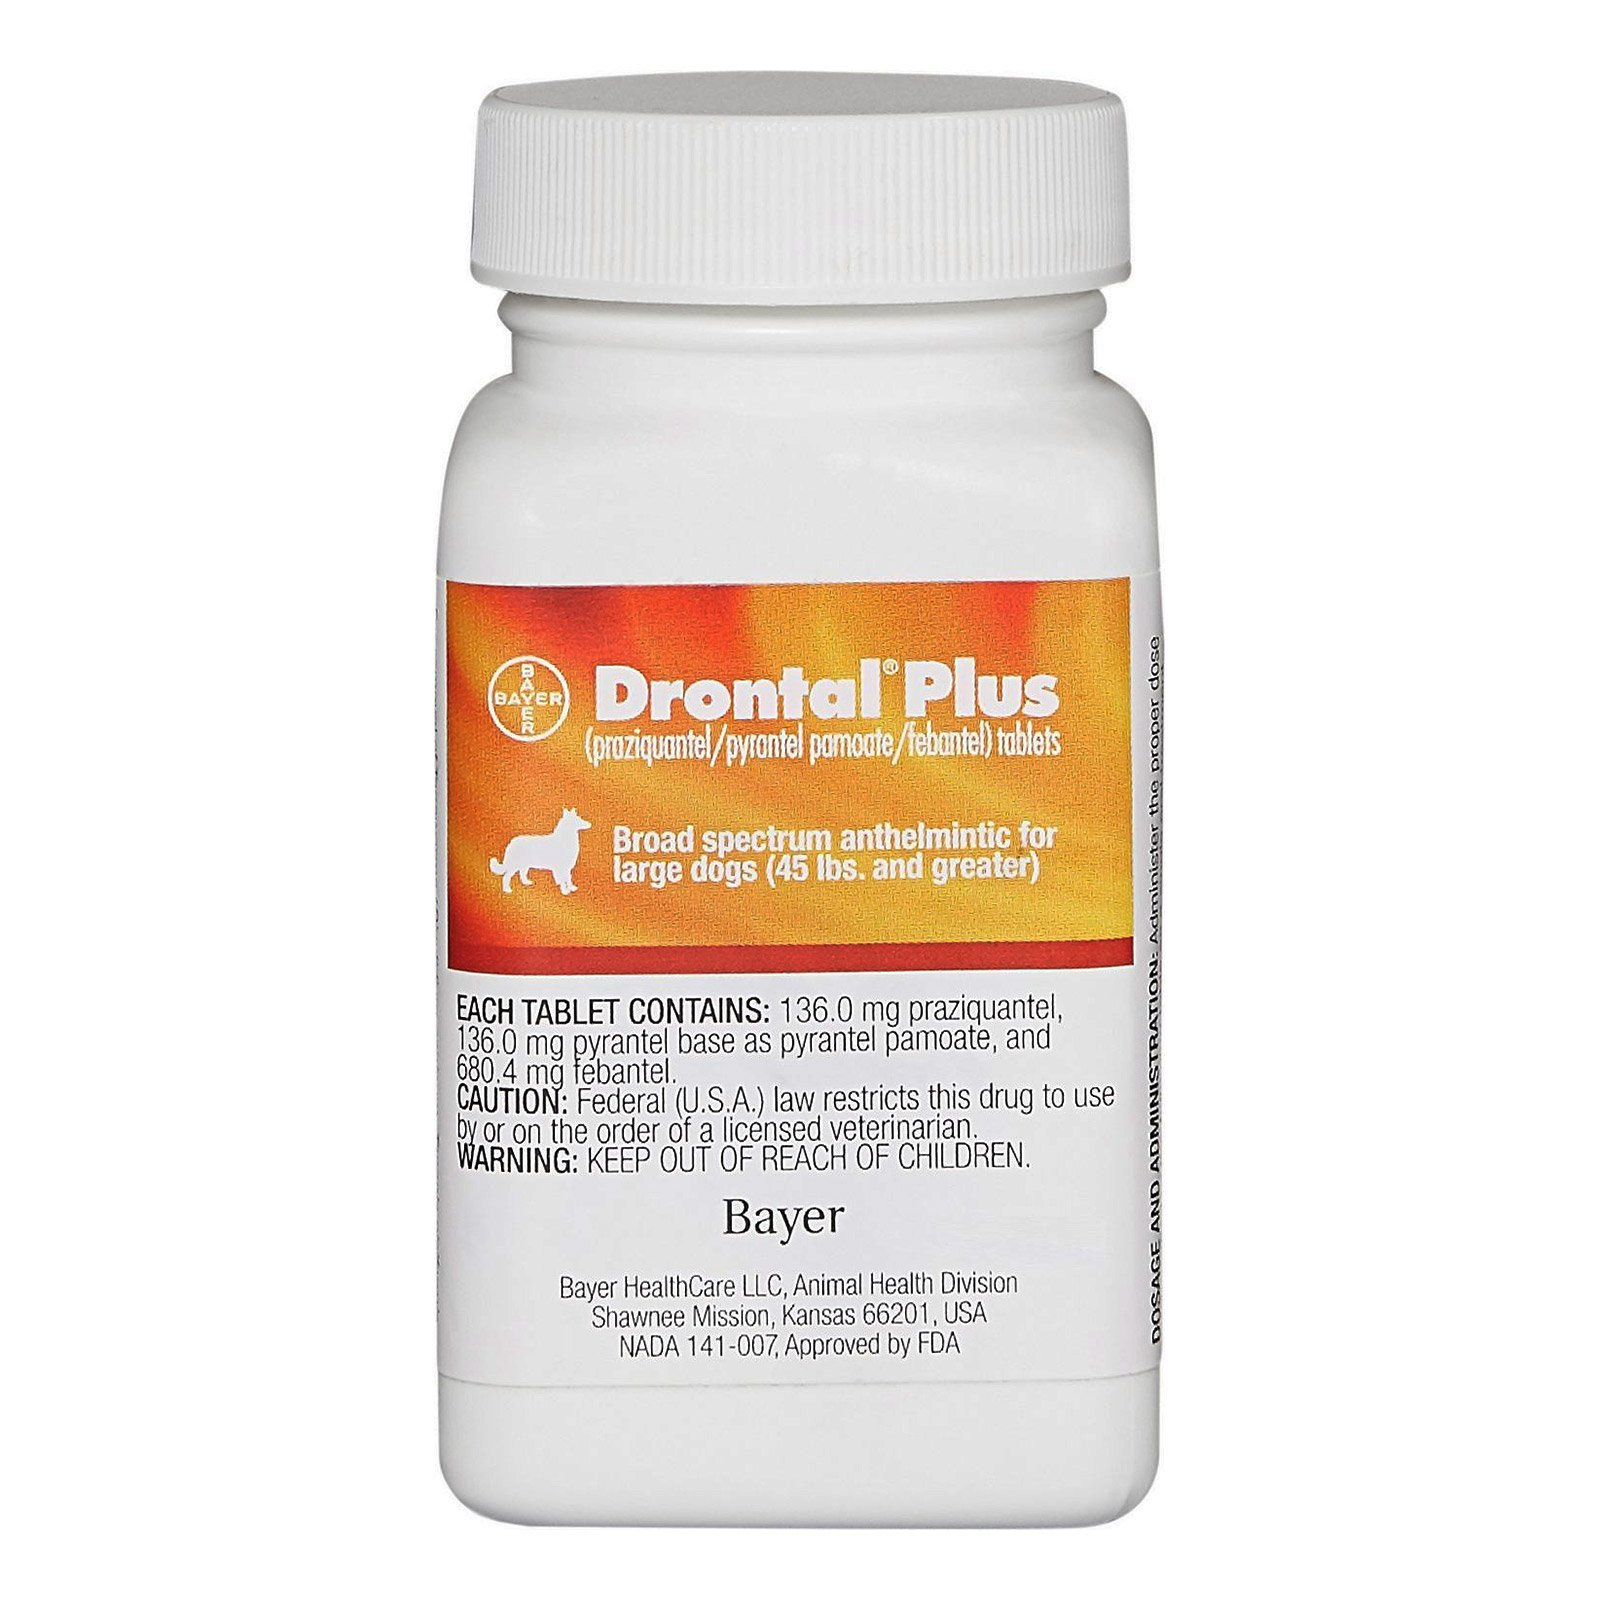 636873382904402340-drontal-plus-for-dogs-flavor (1)